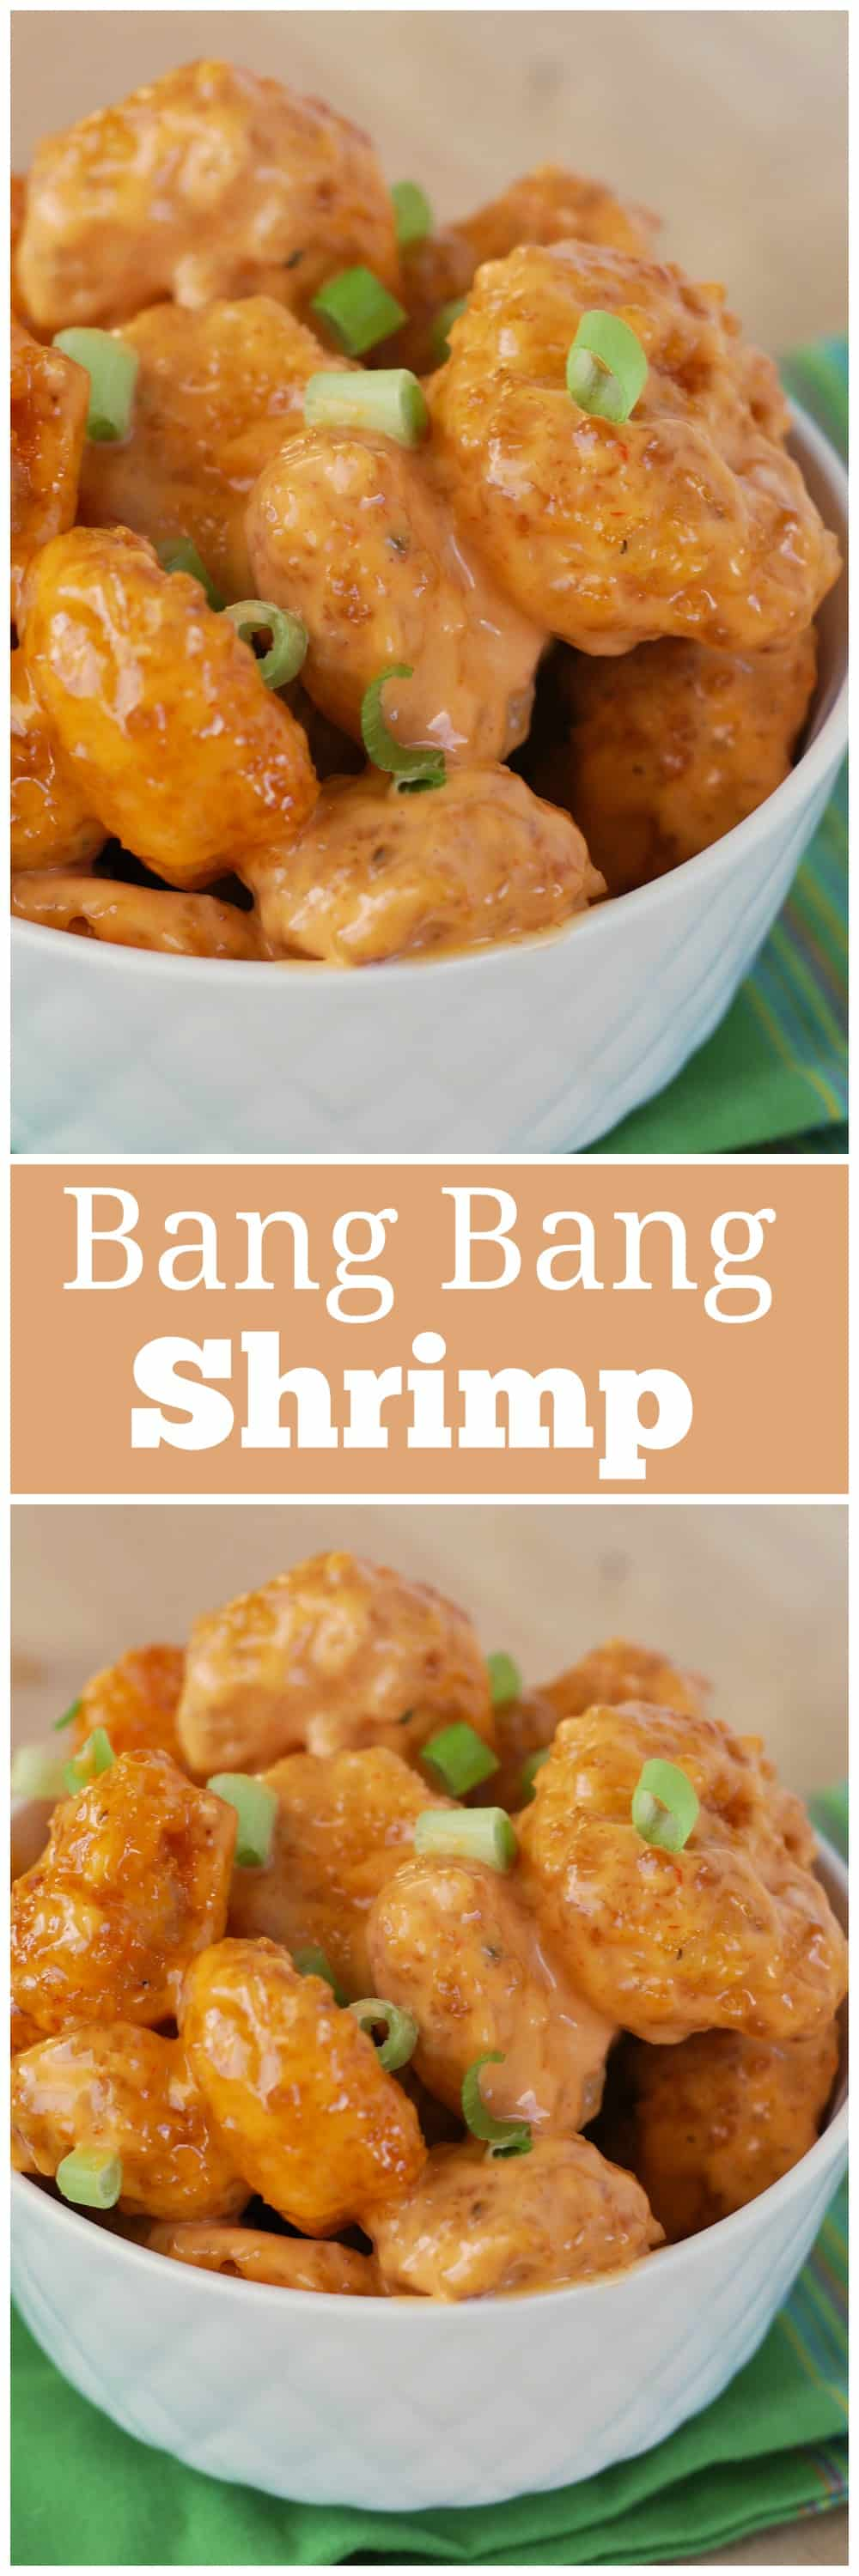 Bang Bang Shrimp - Bonefish copycat recipe! Crispy shrimp is a creamy, spicy sauce! This is the BEST shrimp ever.